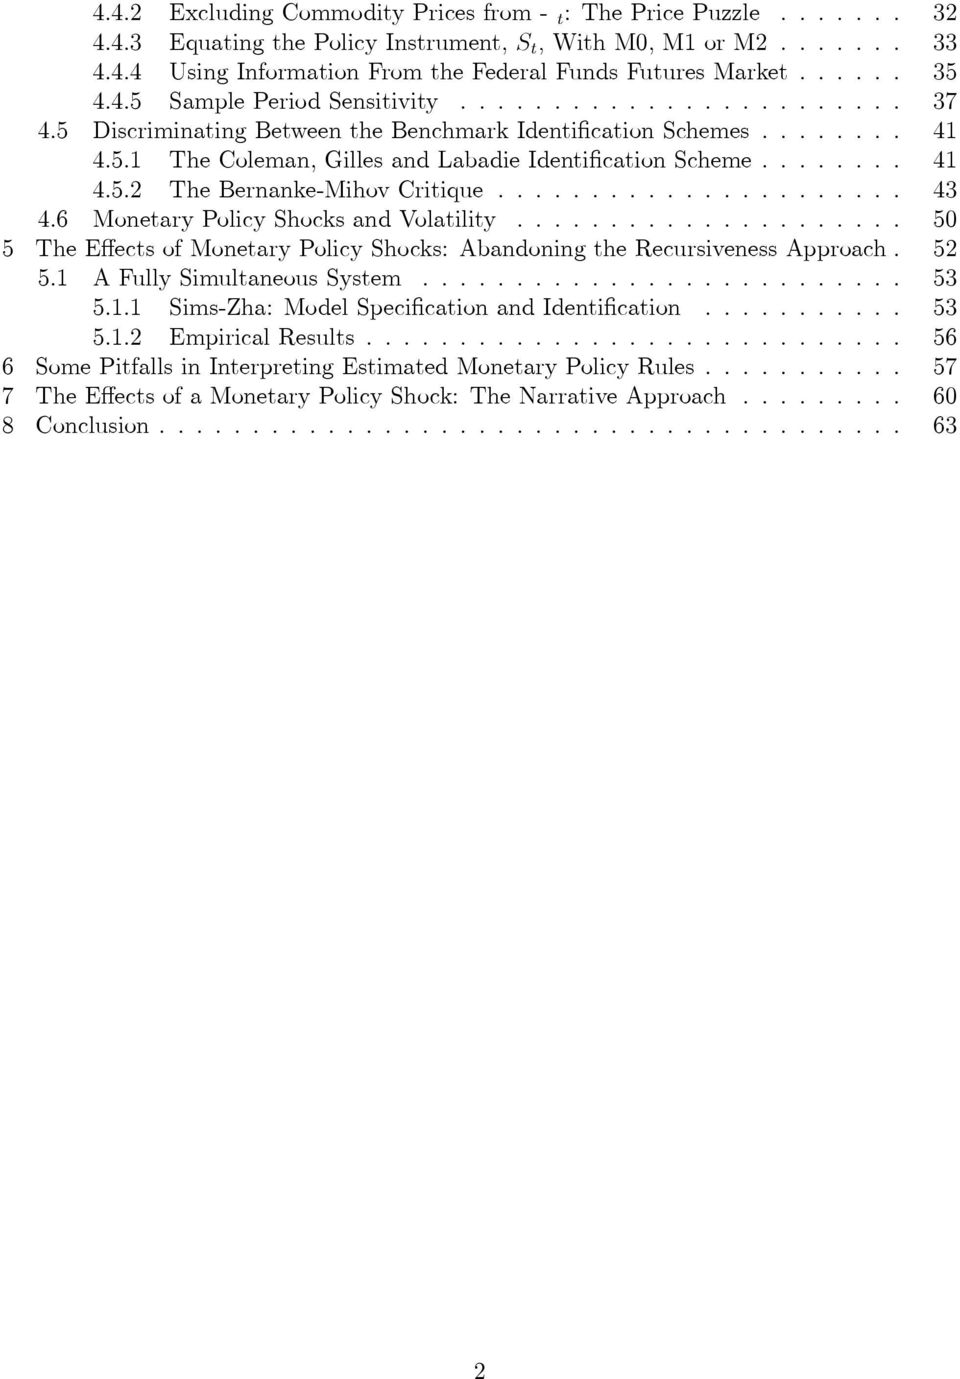 ..................... 43 4.6 Monetary Policy Shocks and Volatility..................... 50 5 The E ects of Monetary Policy Shocks: Abandoning the Recursiveness Approach. 52 5.